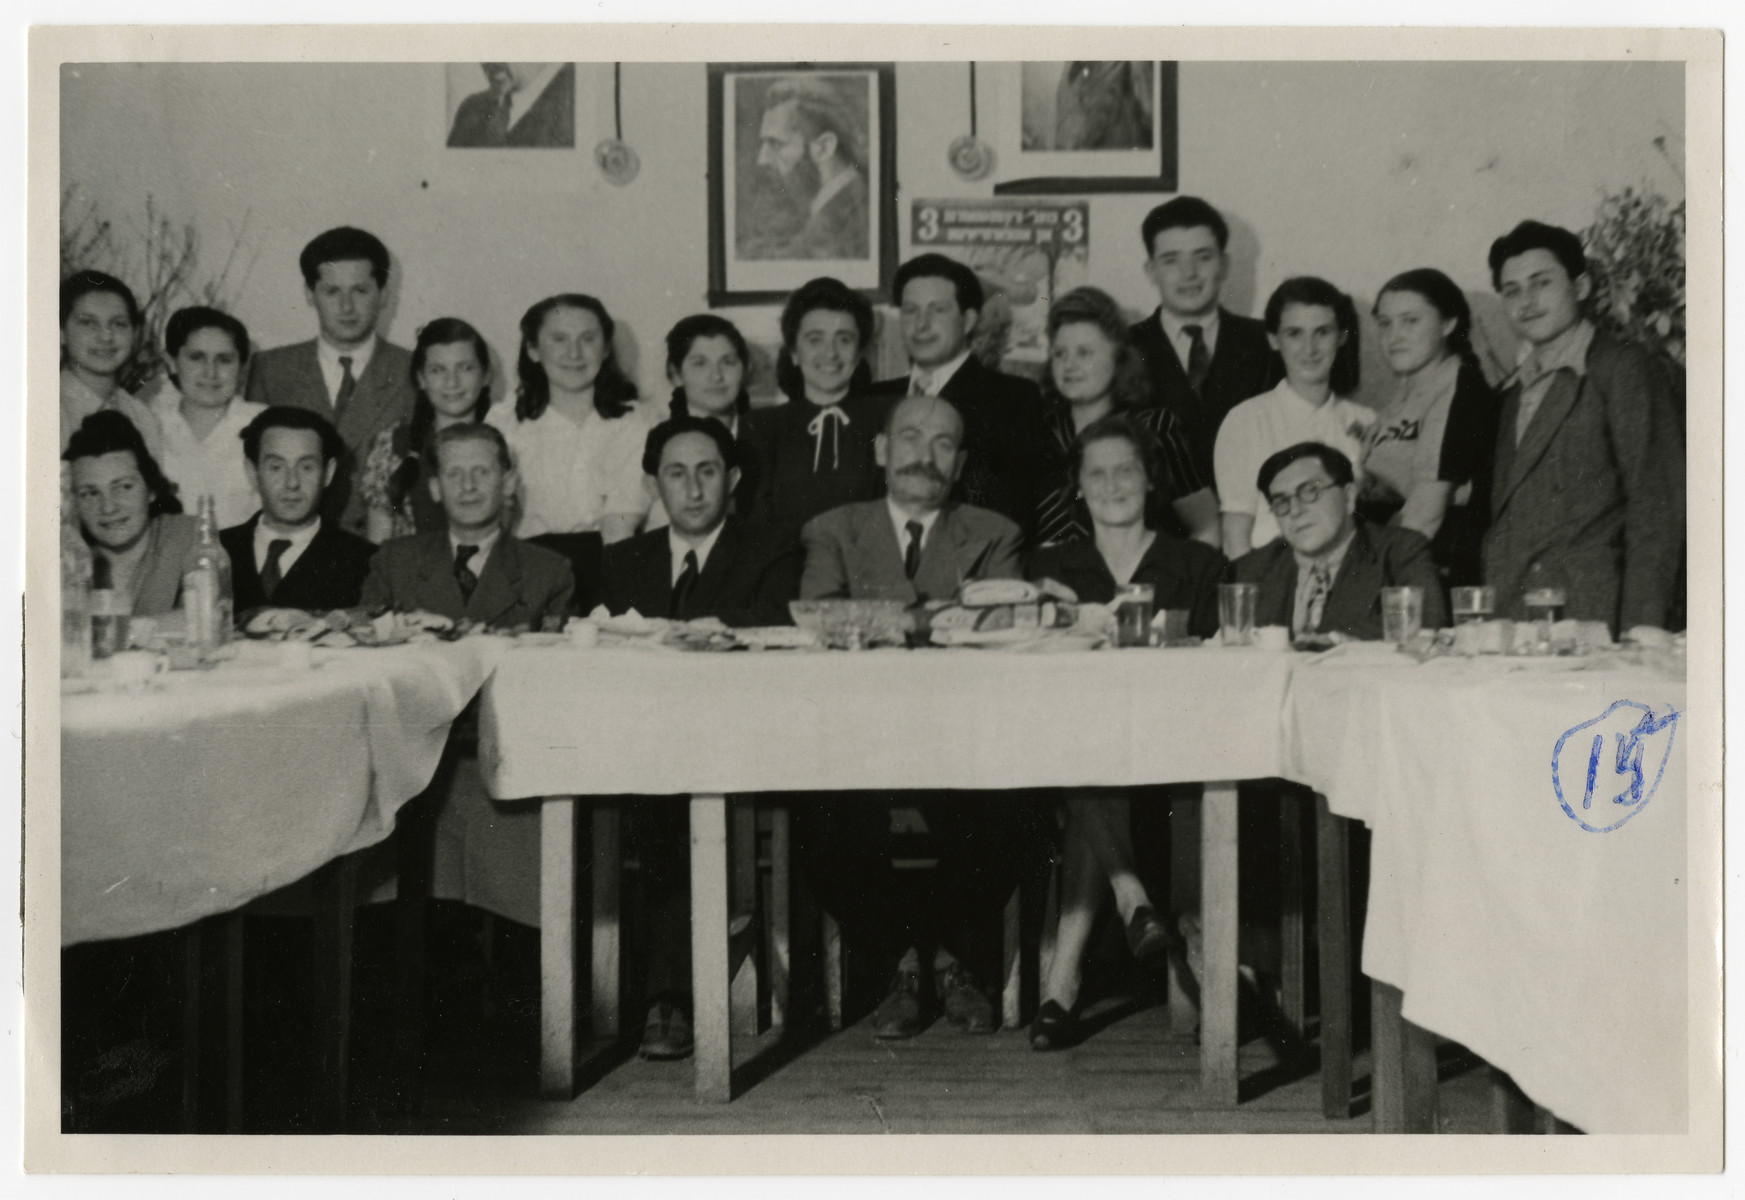 Group portrait of the teaching staff and some of the students of the Zeilsheim High School.  Among those pictured is Solomon Manischewitz, seated, second from the left, and Mr. Epstein, the principal, seated in the center.